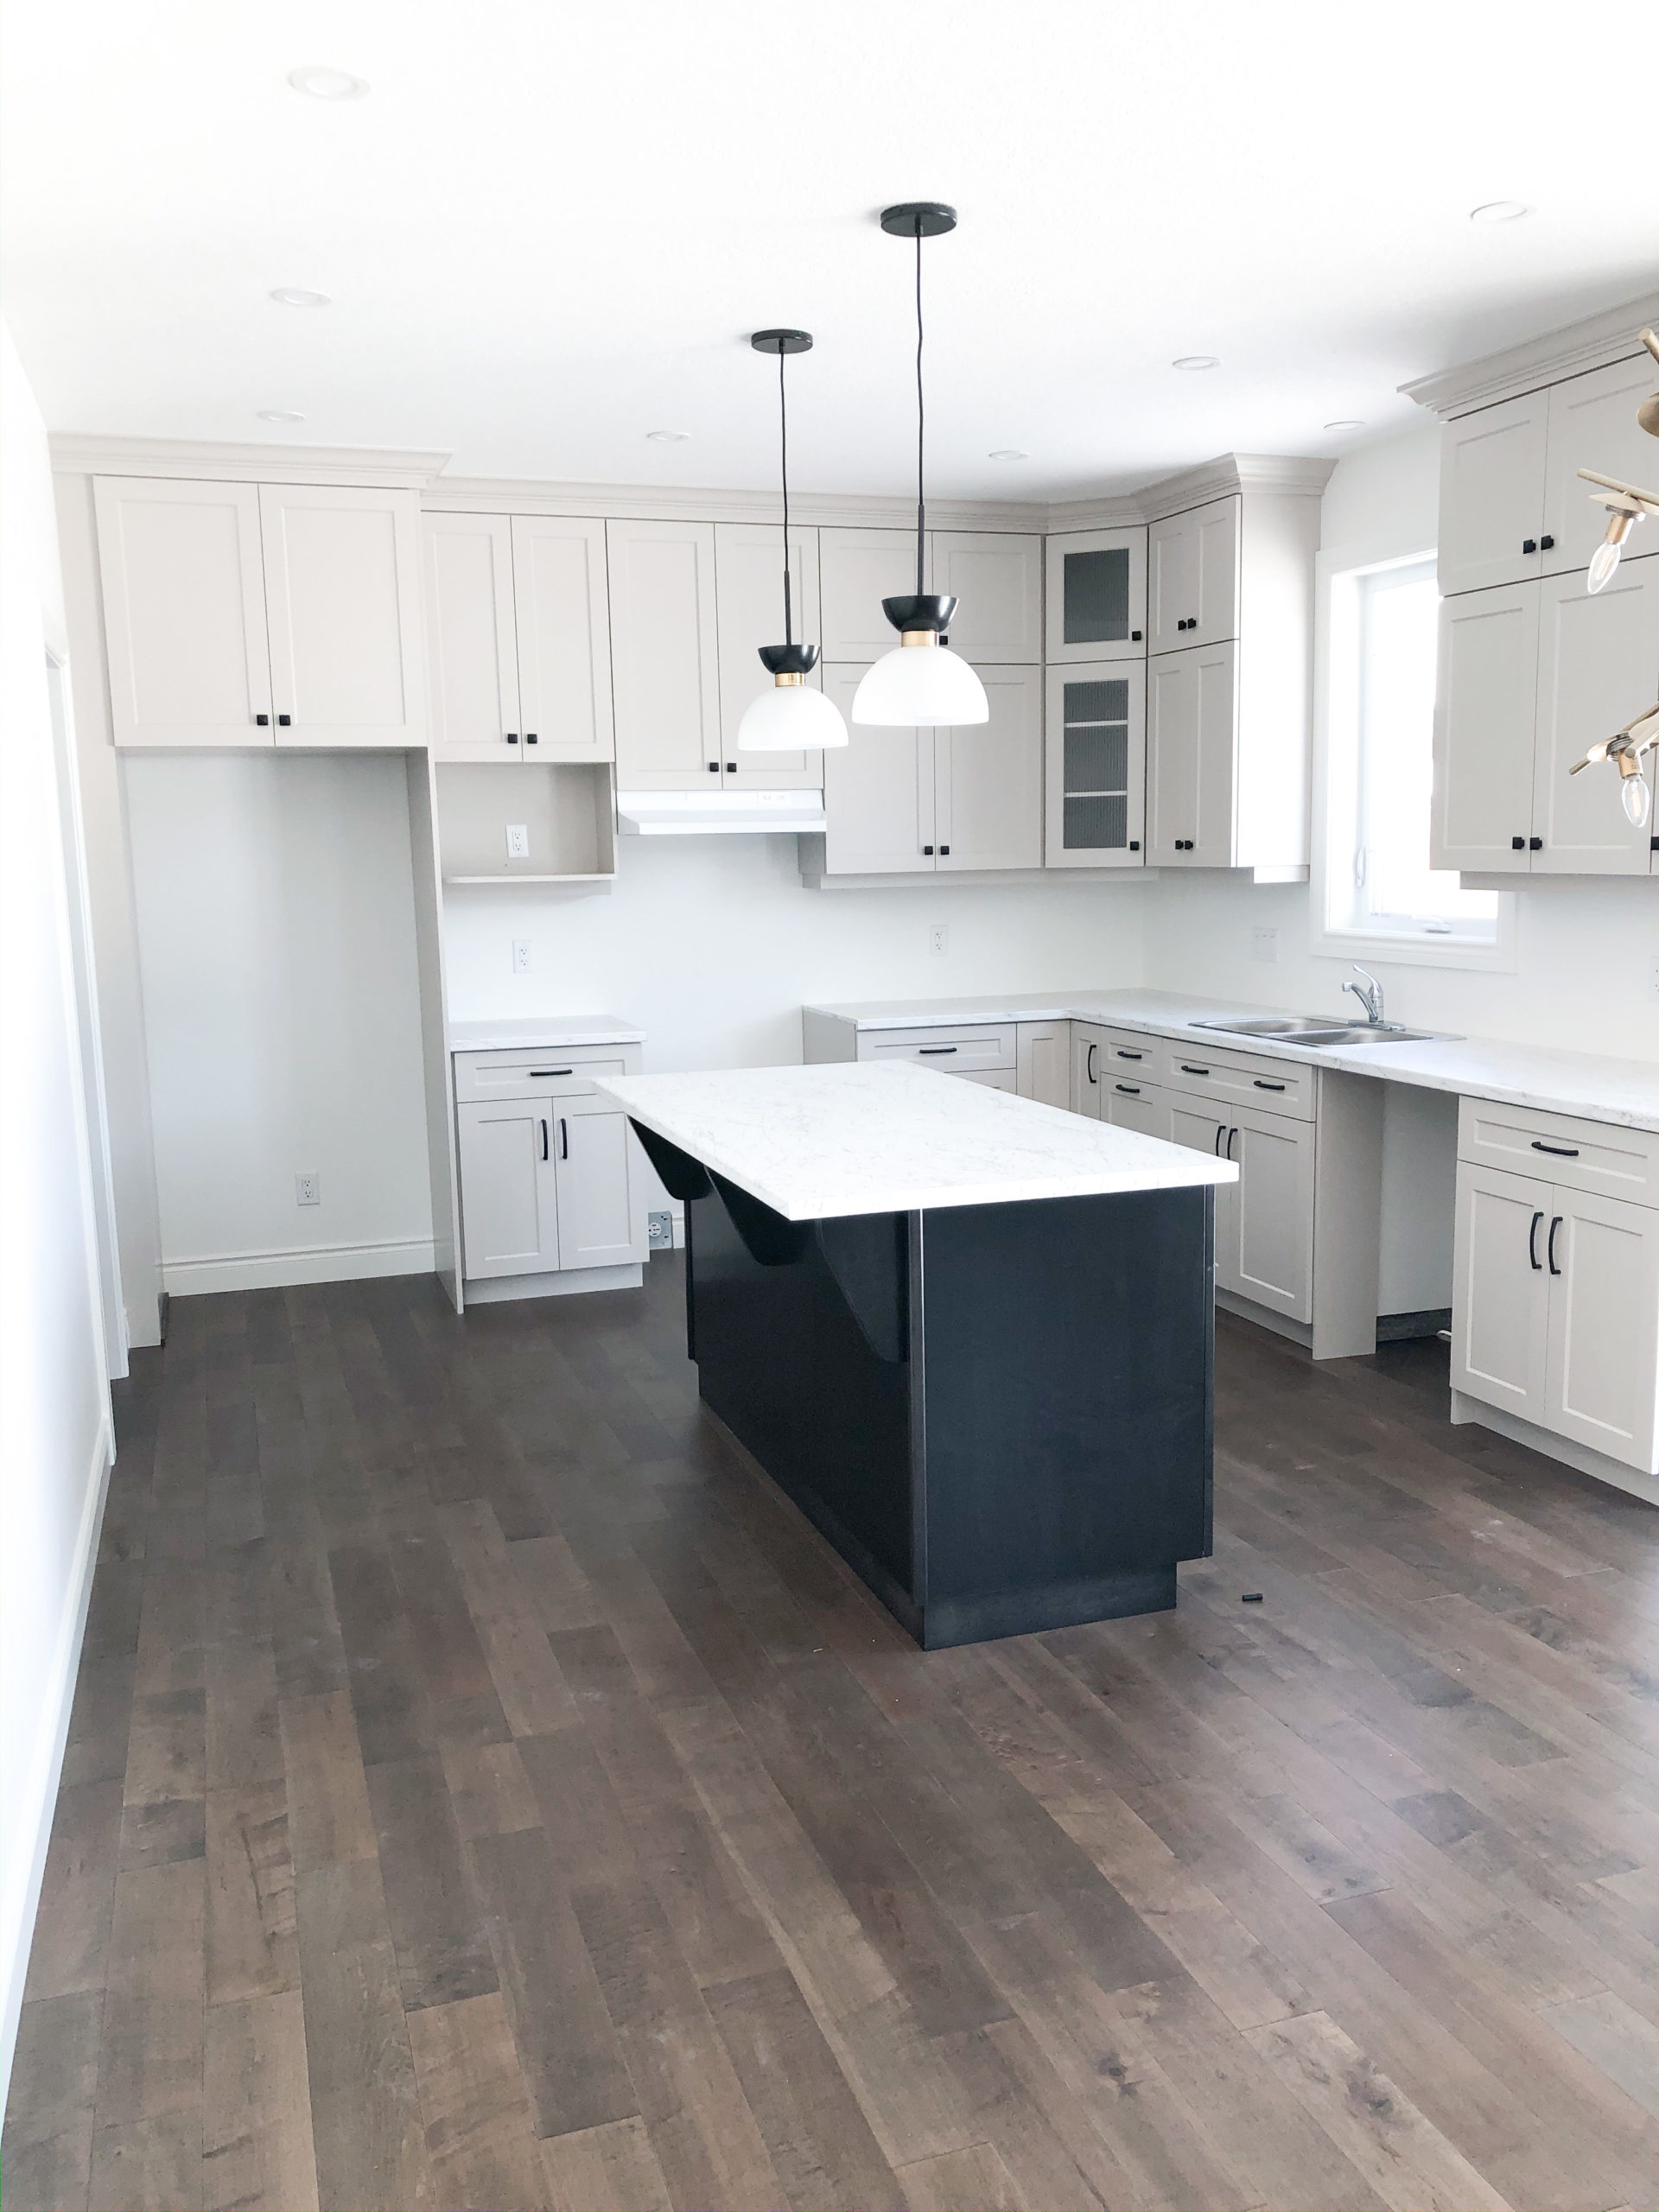 overview of kitchen featuring white cabinets, black island and modern pendant lighting